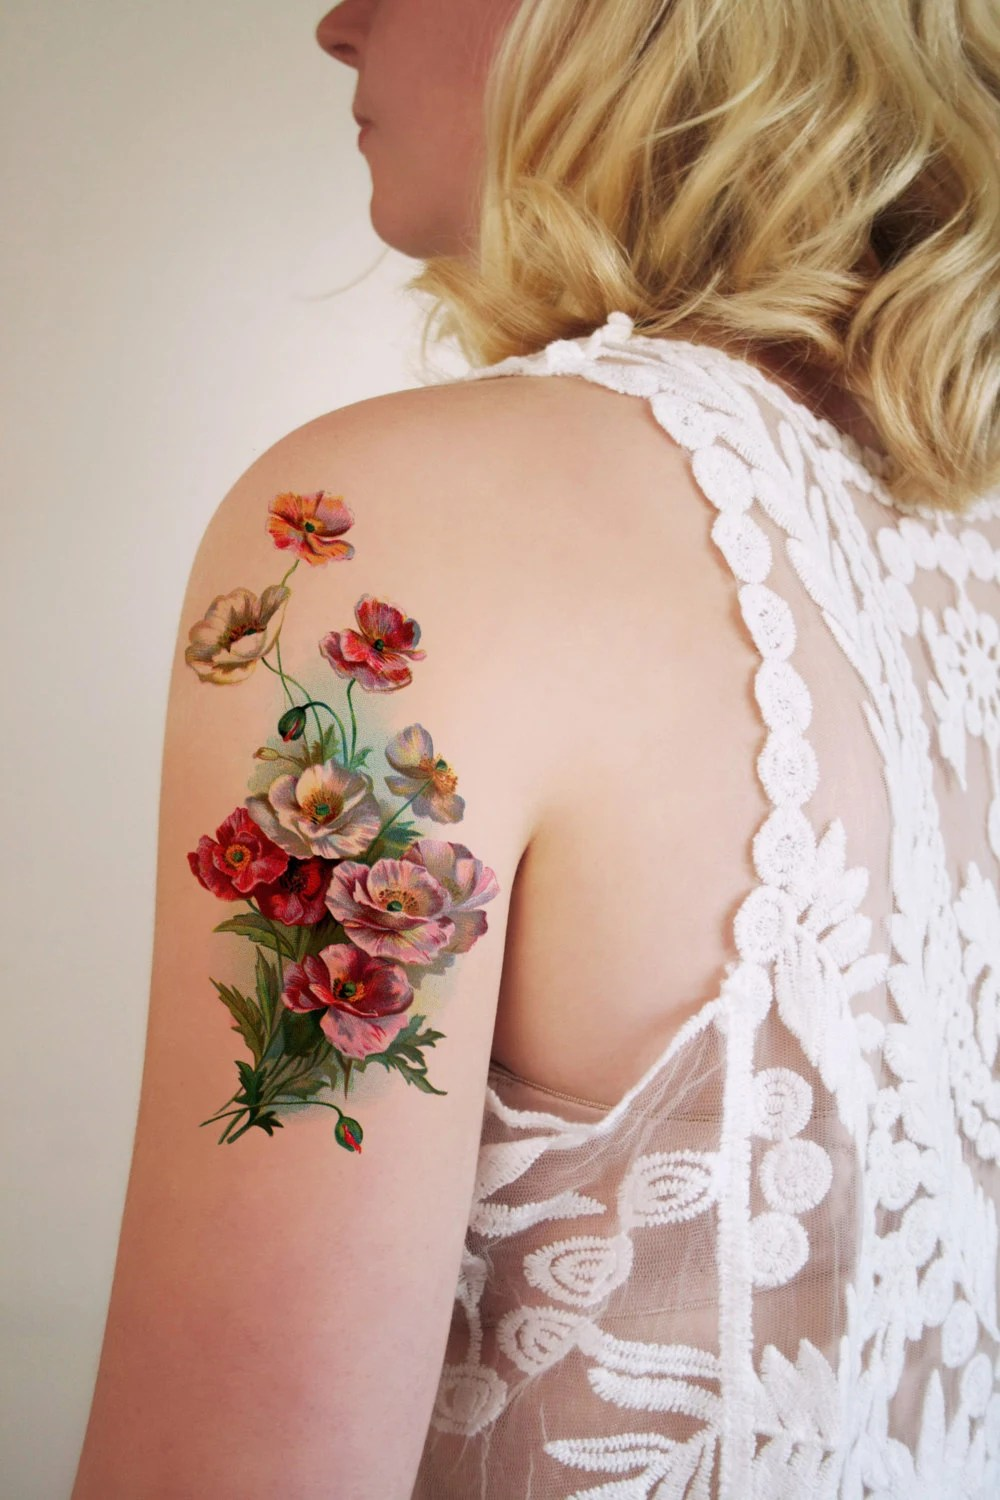 Large Vintage Floral Temporary Tattoo Flower By Tattoorary Ideas And Designs